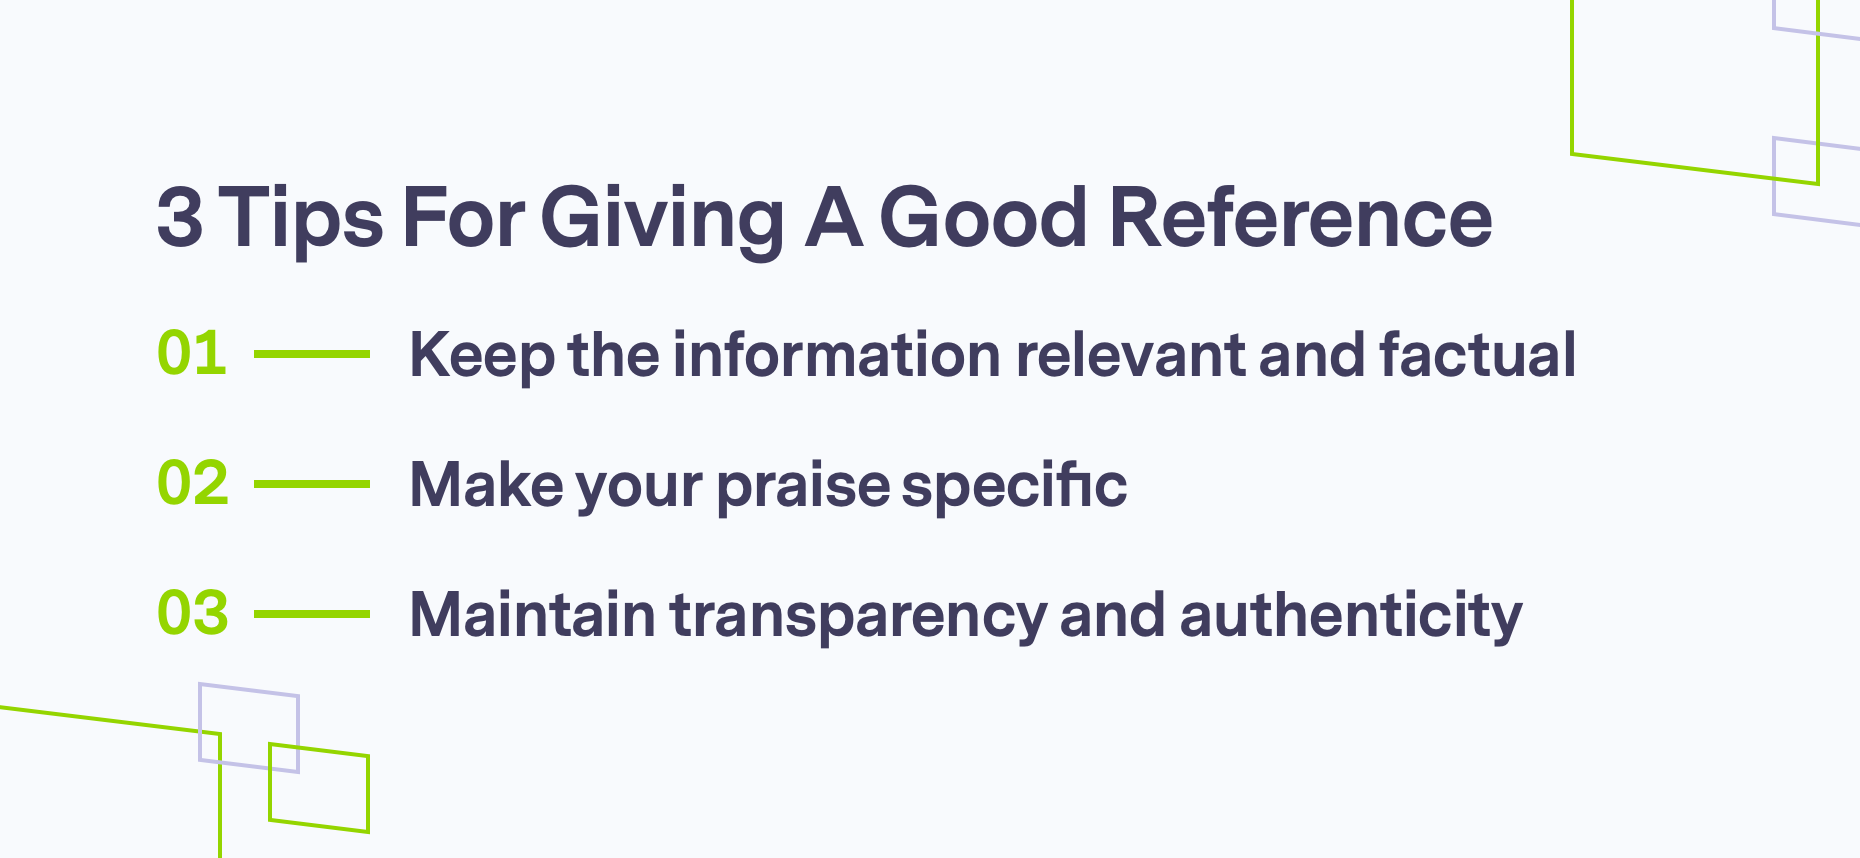 Branded graphics for 3 tips for a good reference